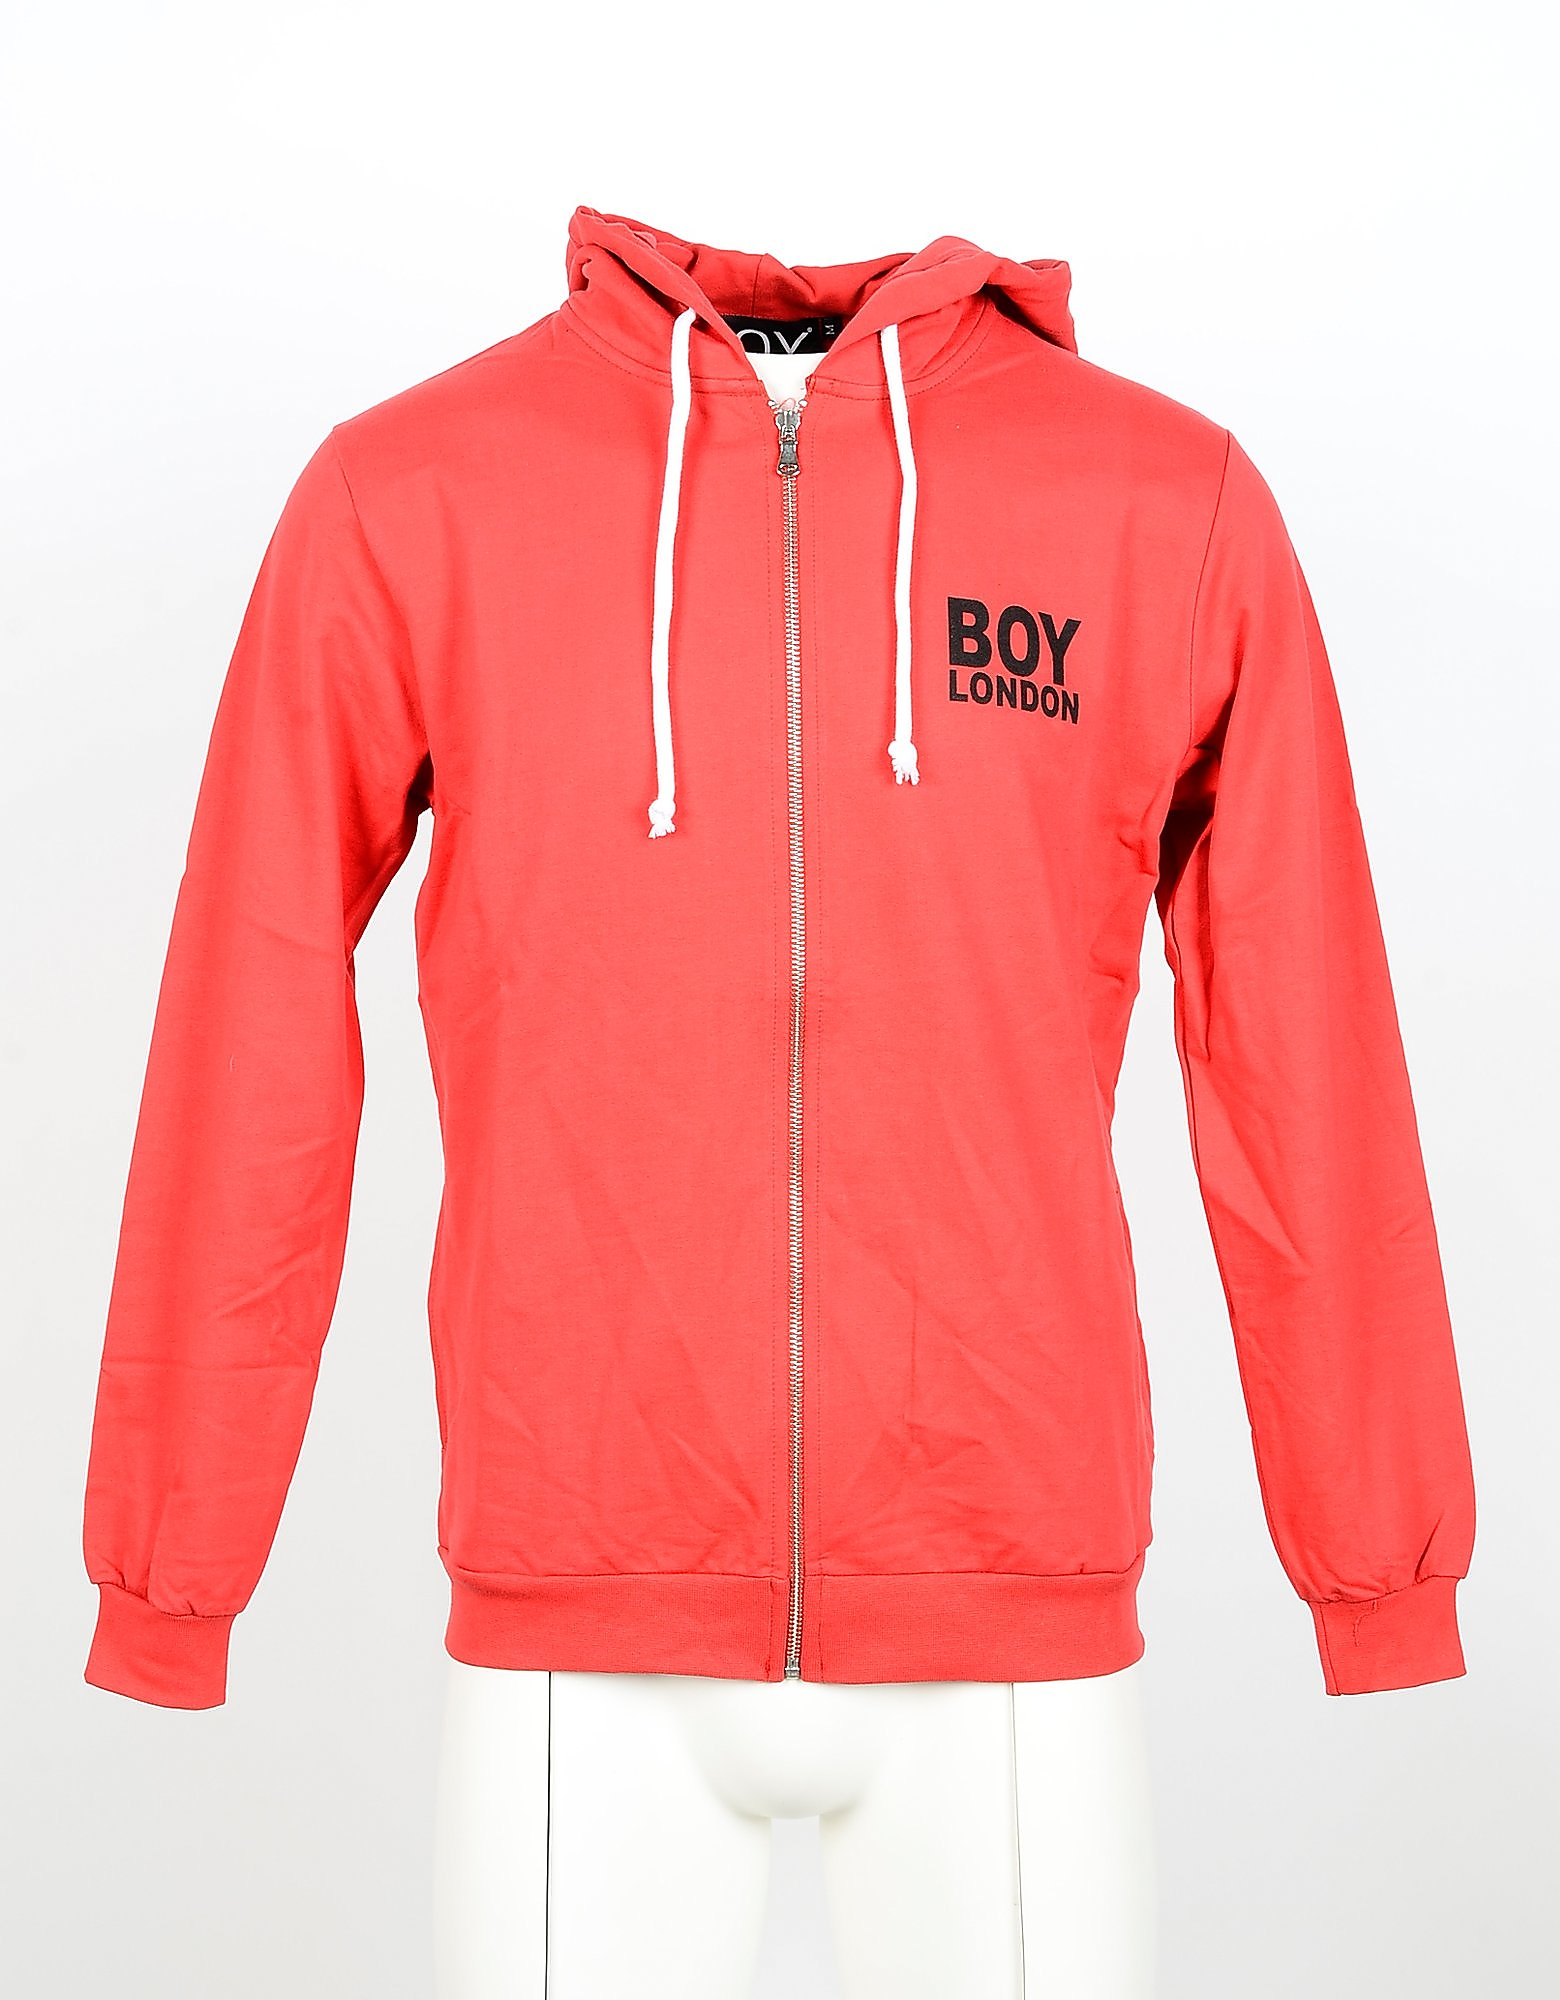 BOY London Designer Sweatshirts, Red Cotton Zip Front Men's Hoodie